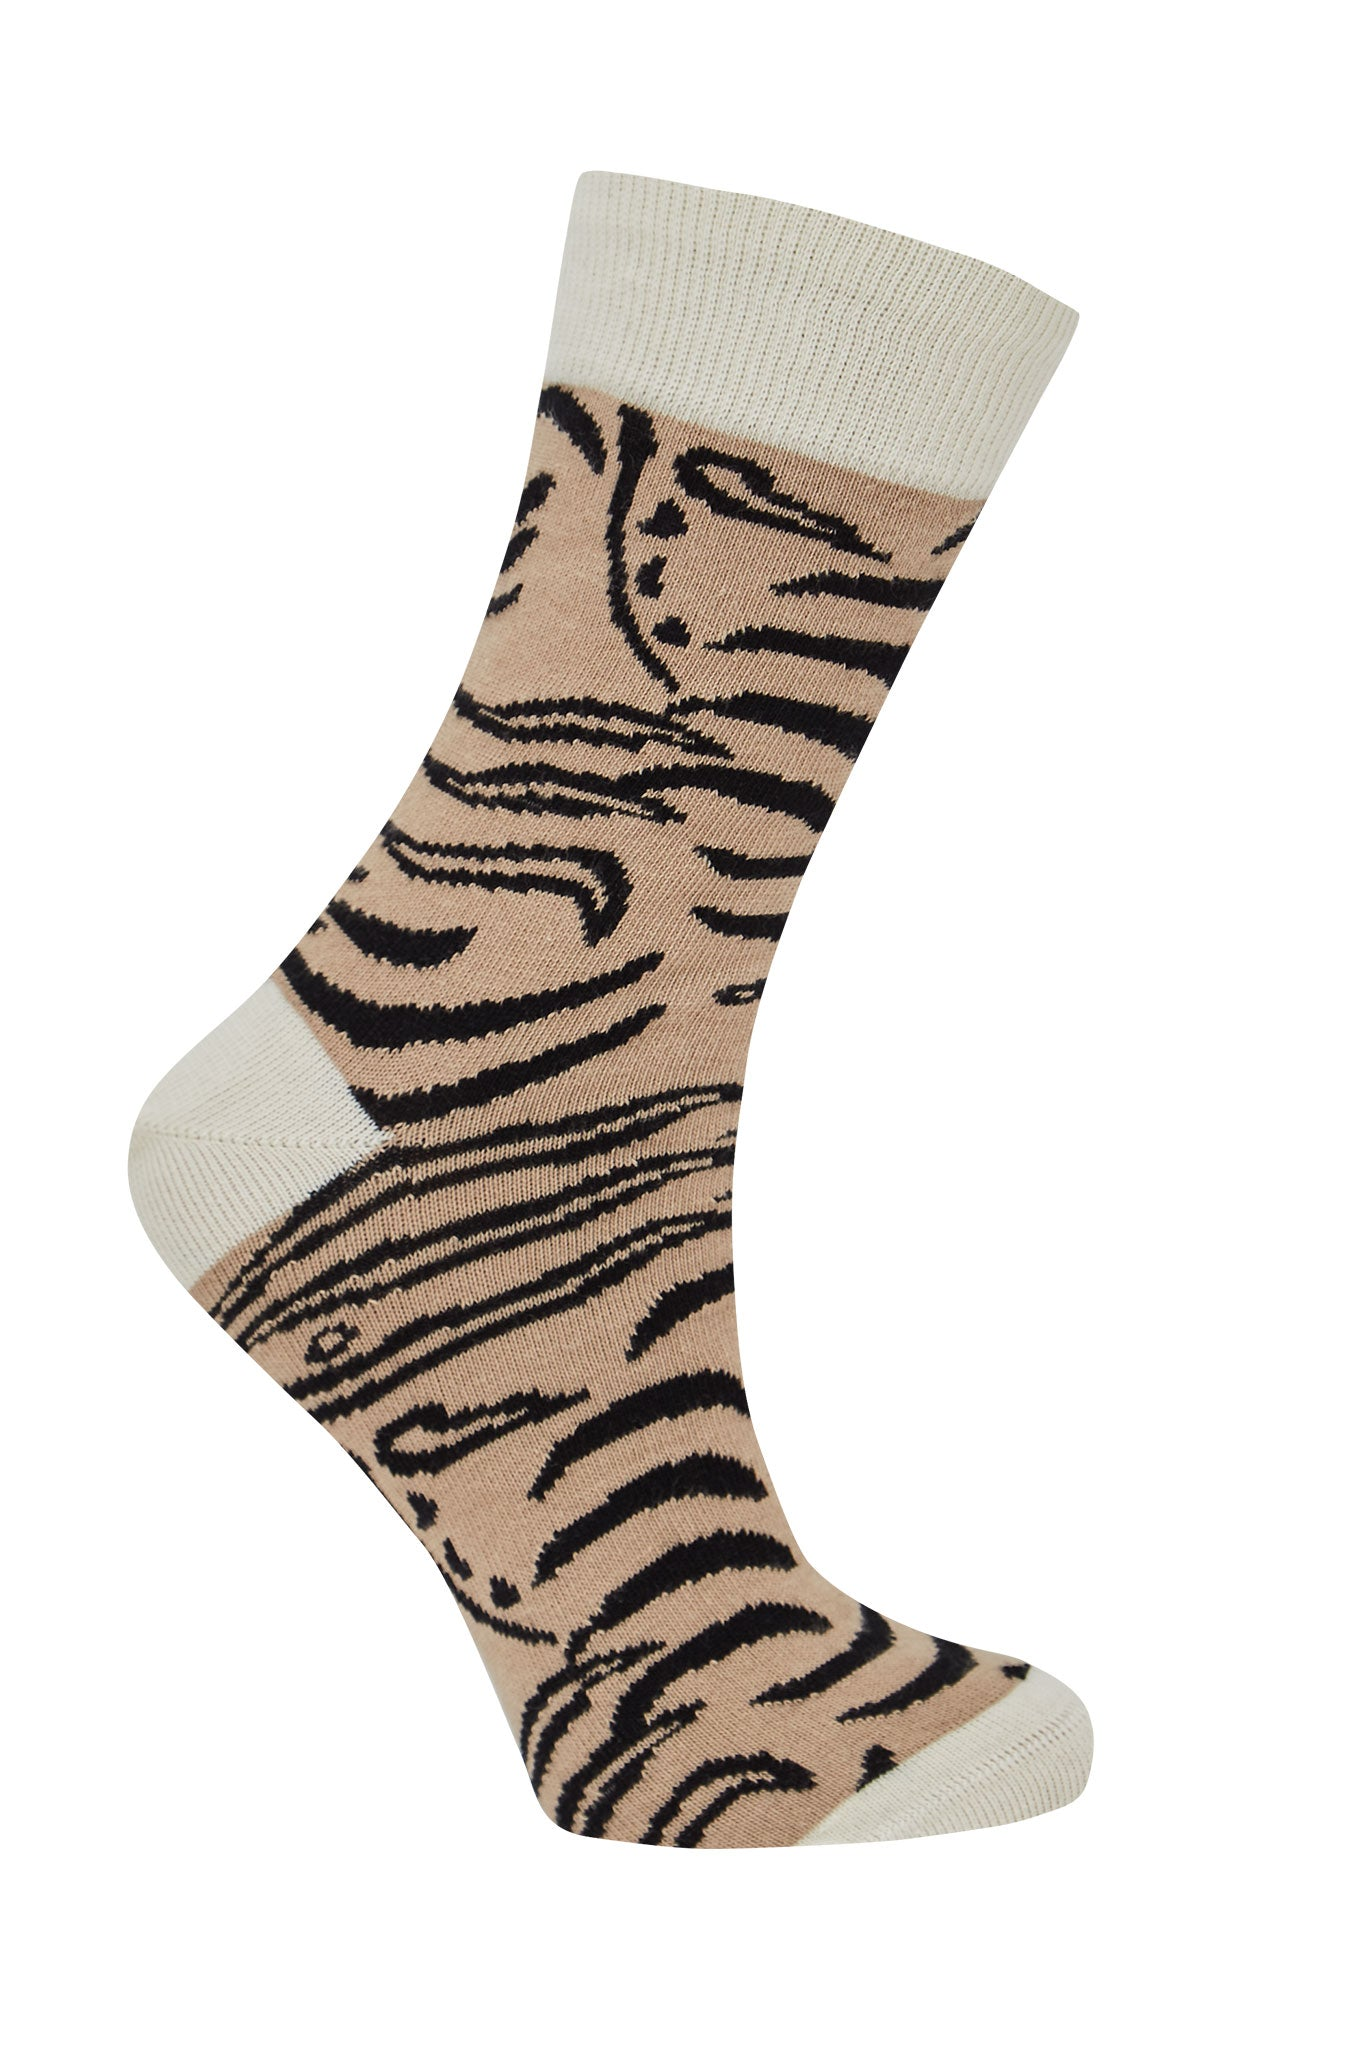 TIGER Sand - GOTS Organic Cotton Socks